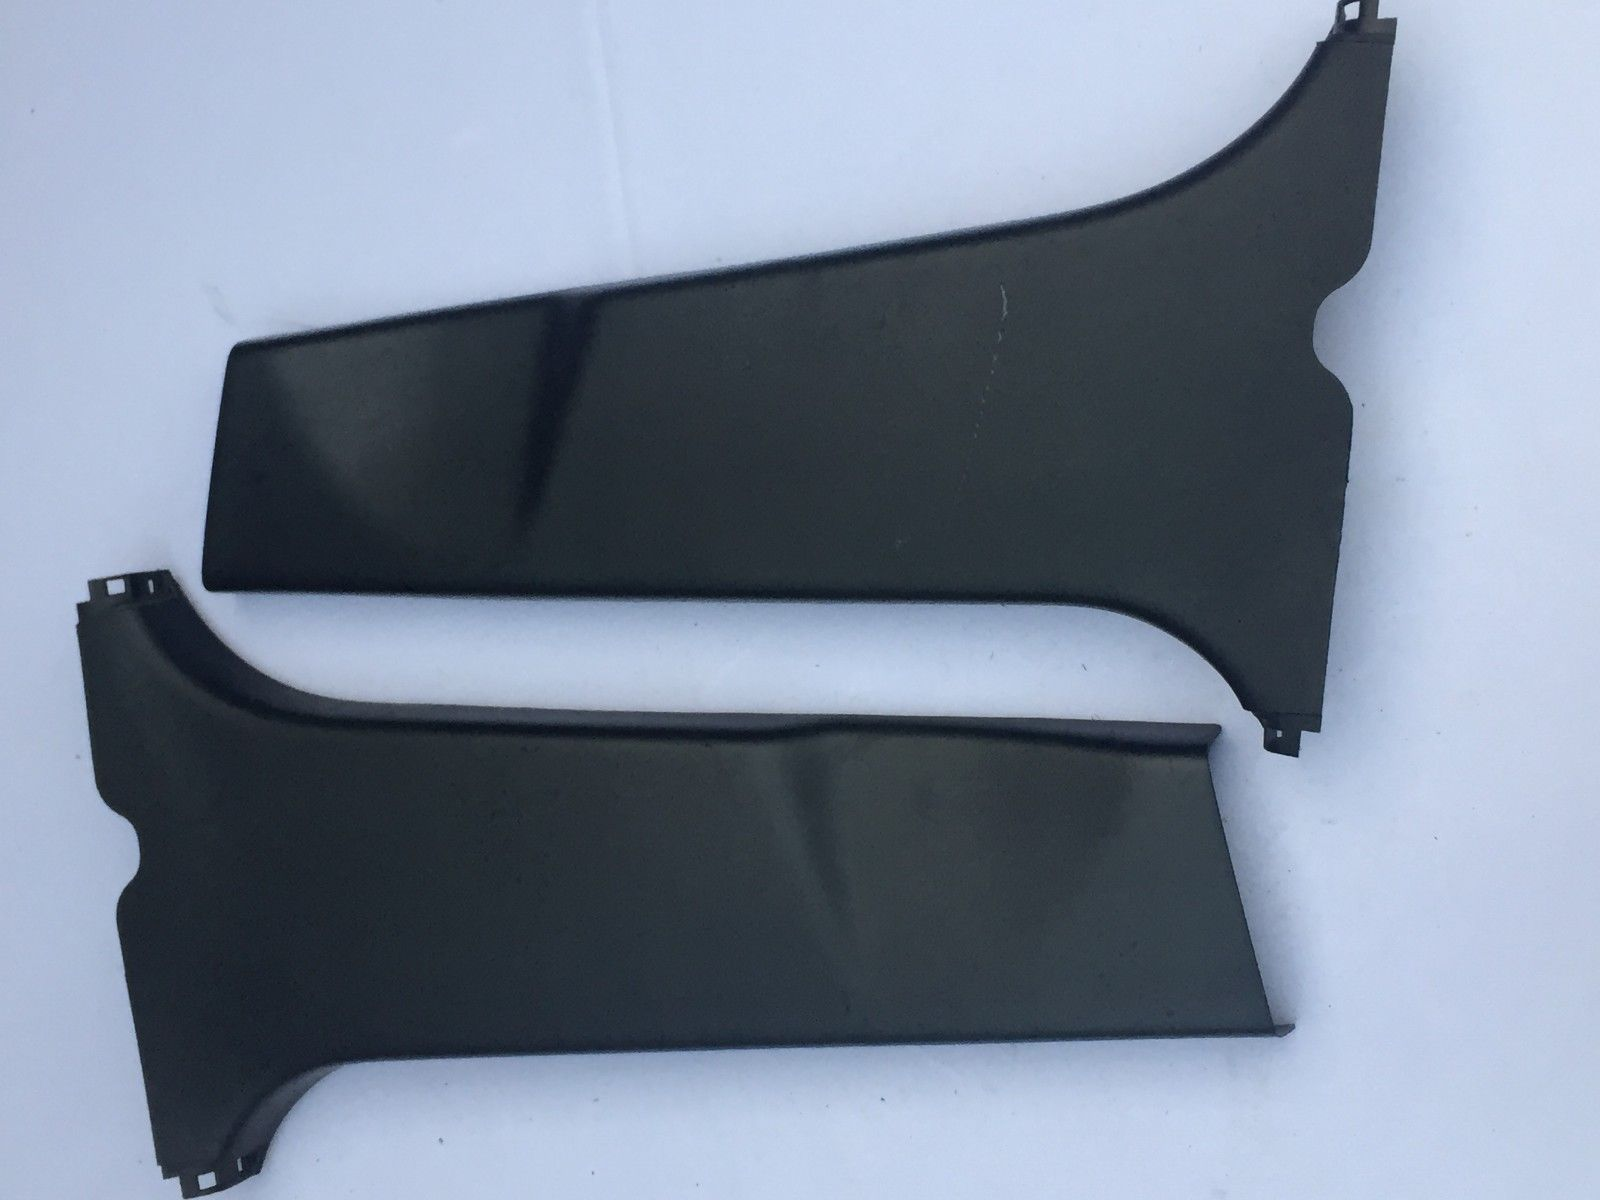 2005 LEXUS RX330 SET OF 2 CENTER PILLAR GARNISH (BOTH SIDES) BLACK OEM